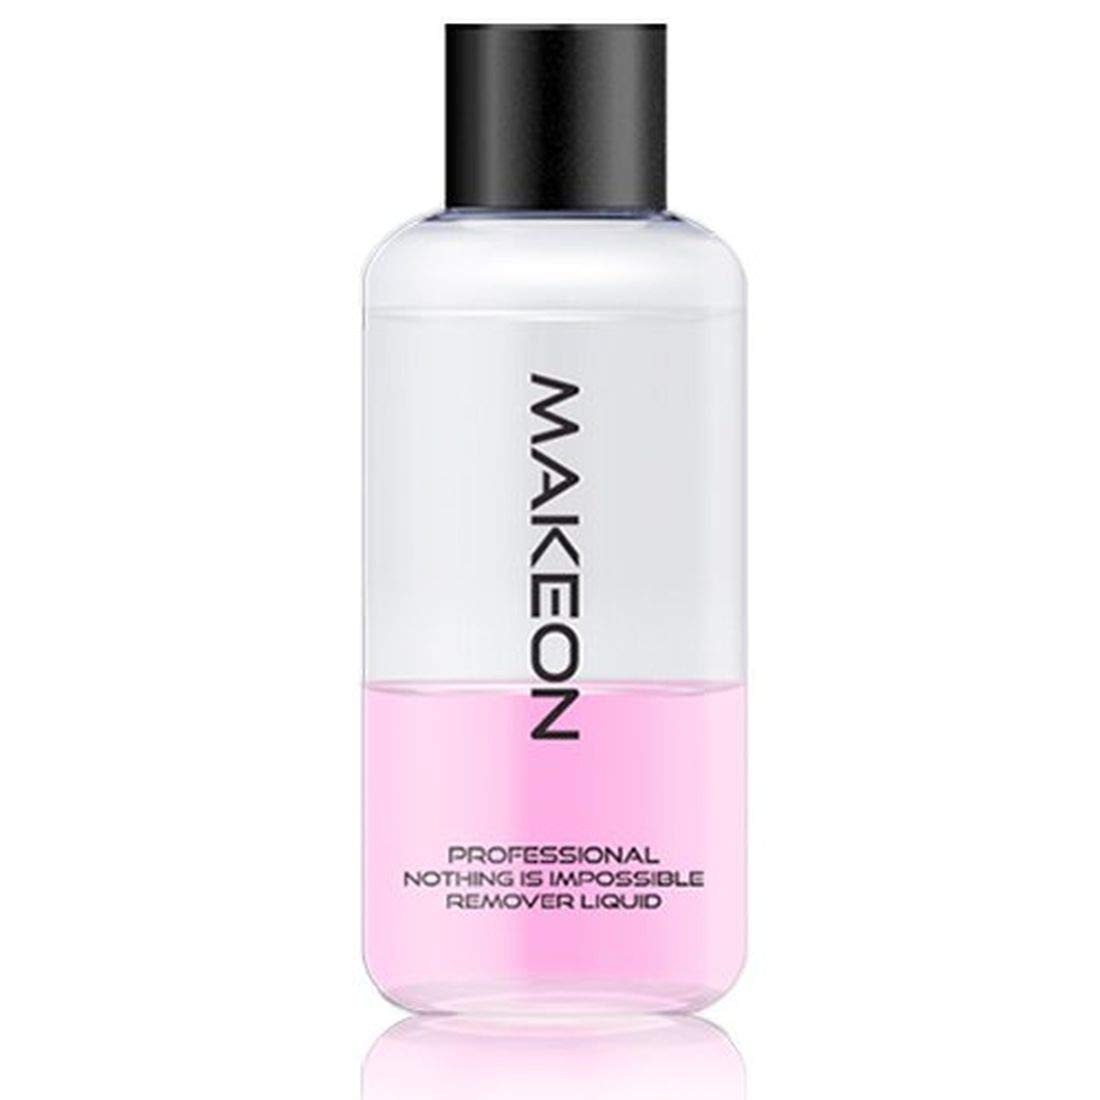 【Tosowoong] [MAKEON]リップ&アイメイクアップリムーバー120ml/メイクアップリムーバー/化粧品 B00HXAHQSY